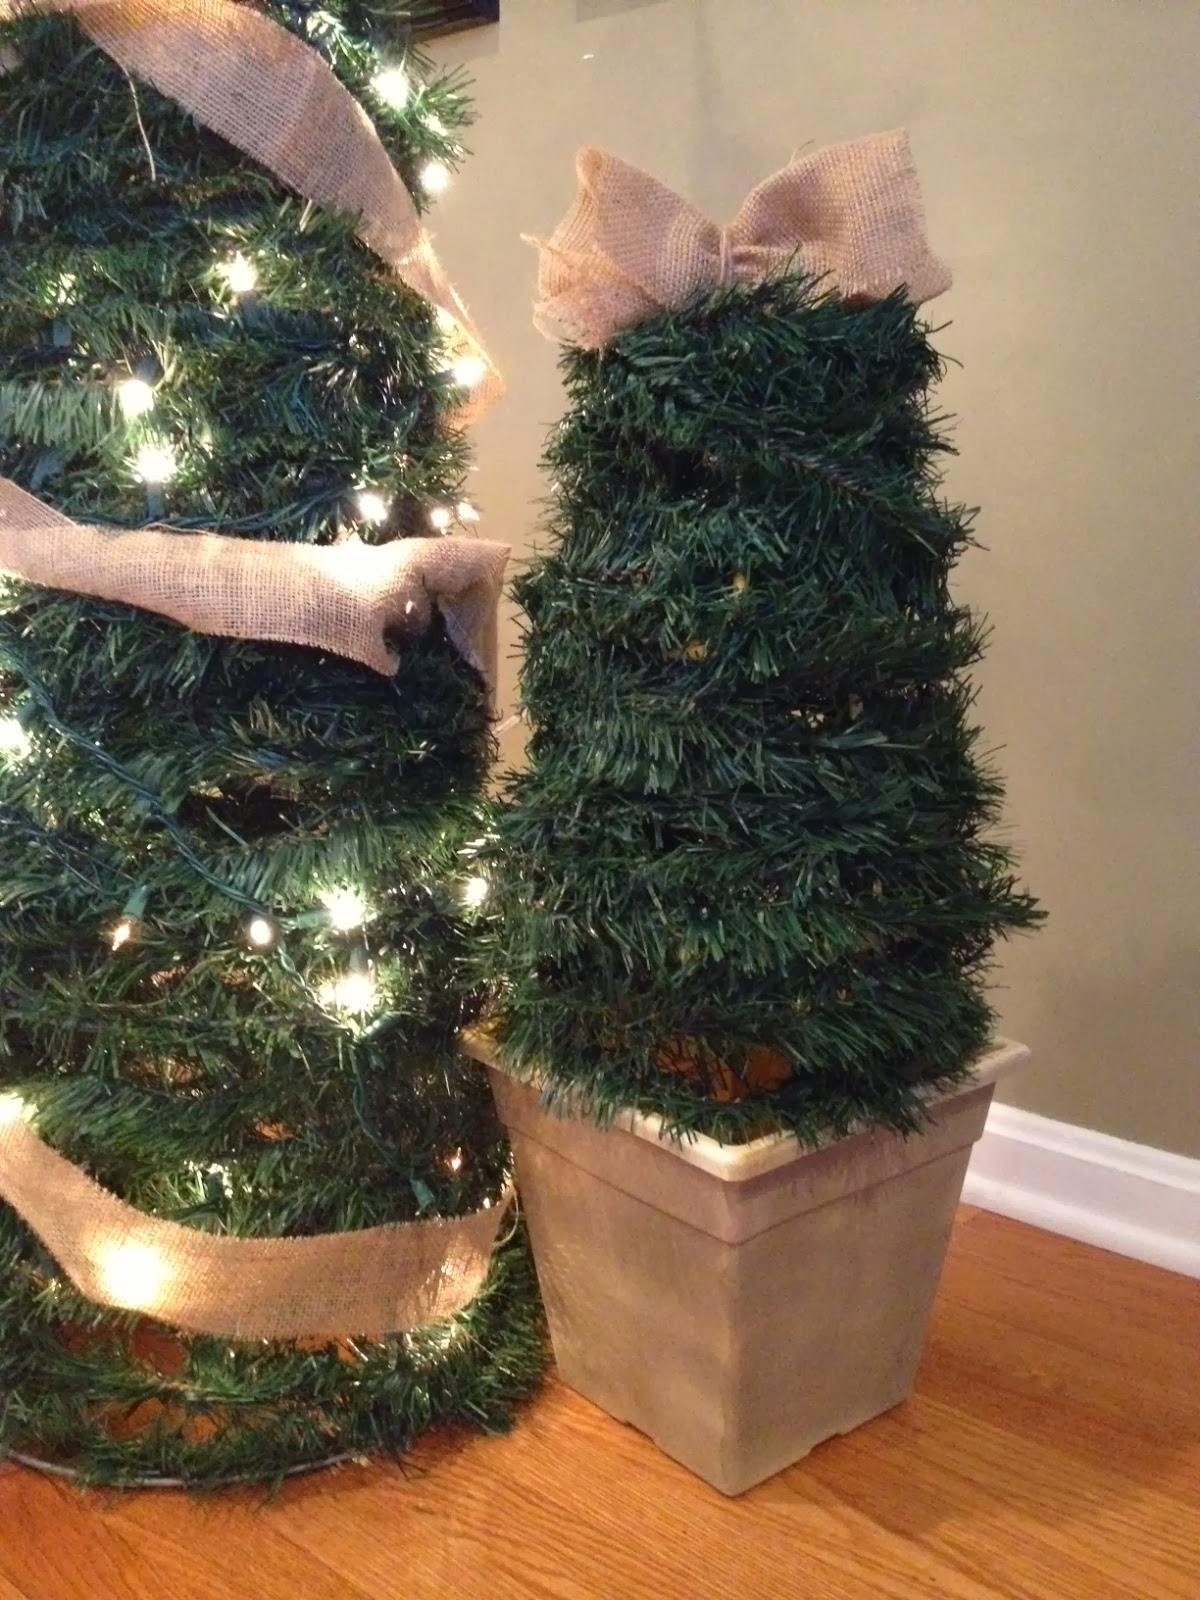 Large DIY Outdoor Christmas Trees from Tomato Cages & Two It Yourself: Large DIY Outdoor Christmas Trees from Tomato Cages